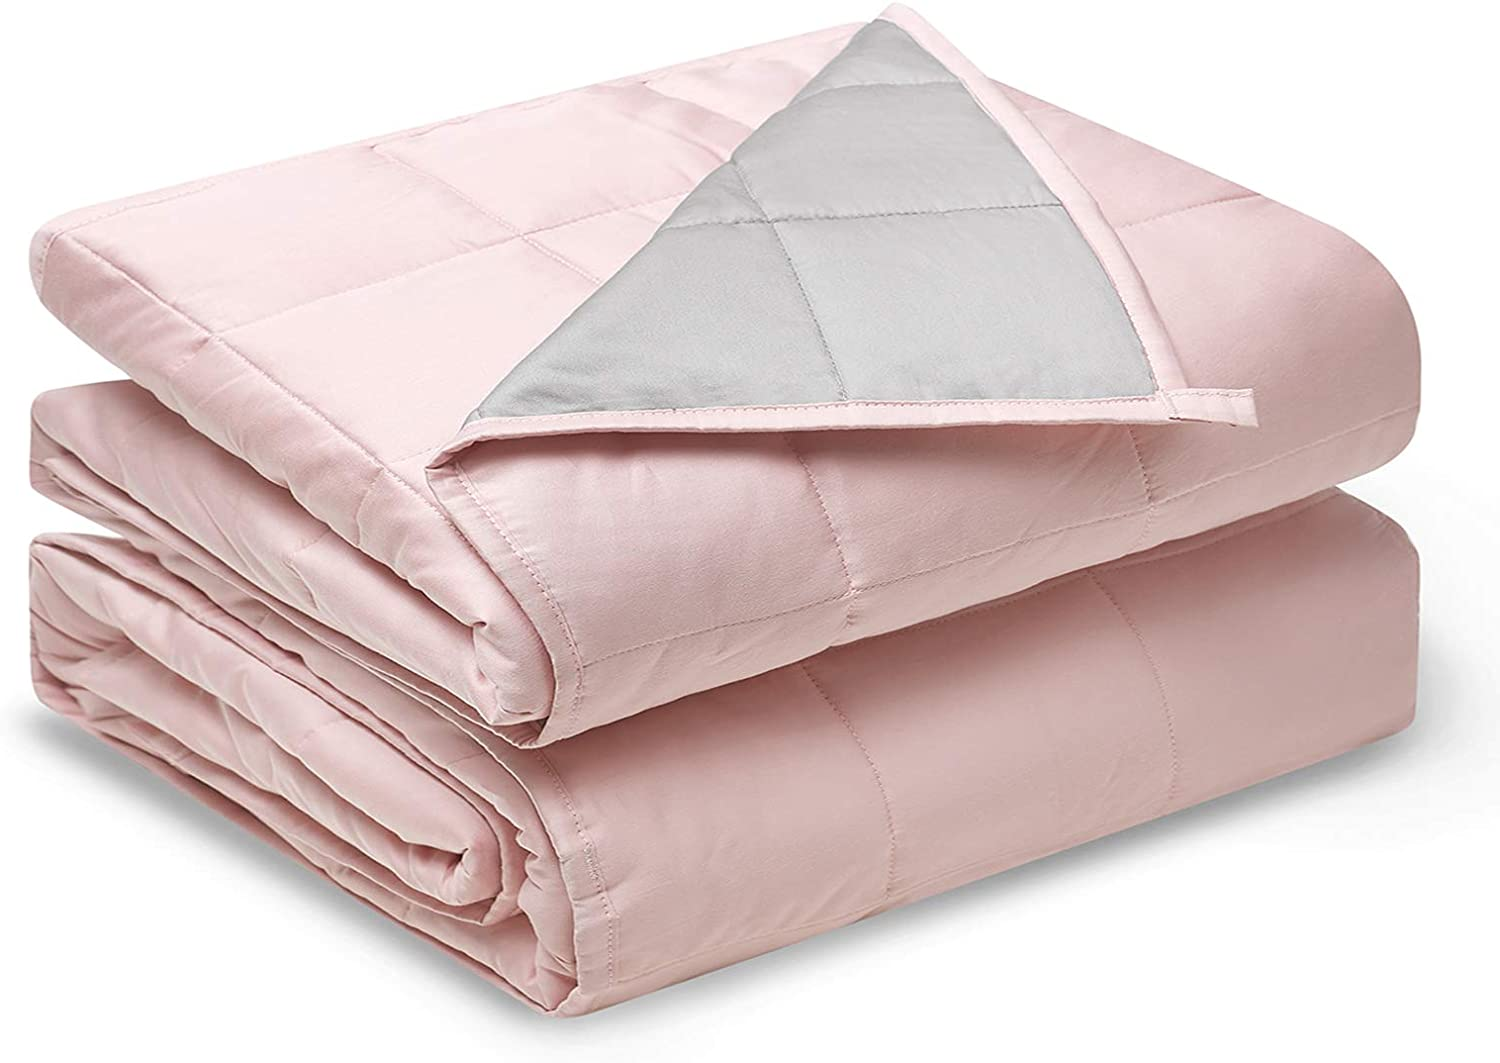 Gifts for Mom: Weighted Blanket